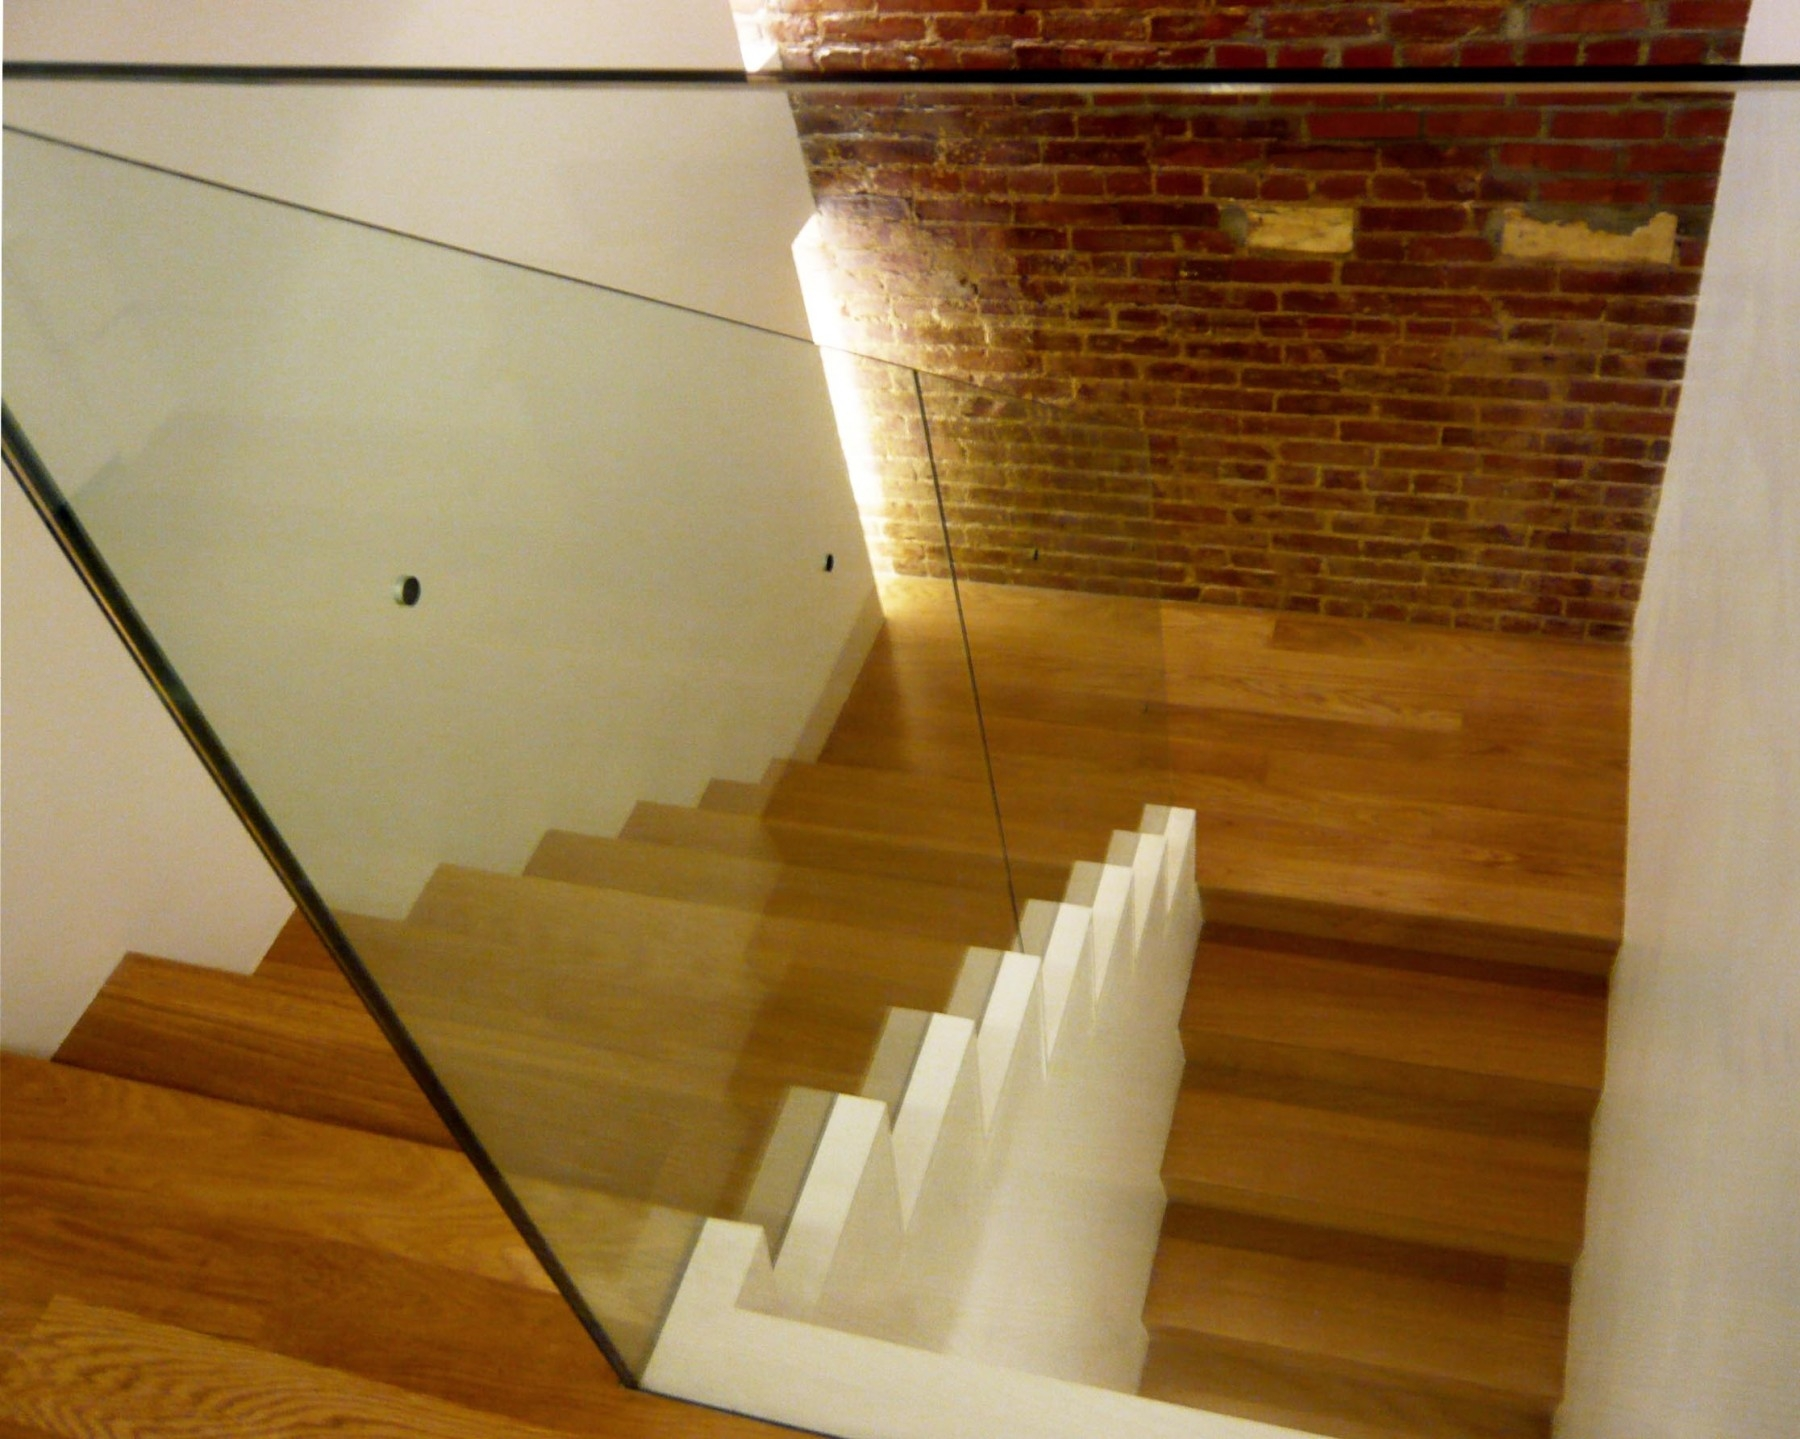 Spiral Staircase Alternatives For Your Nyc Duplex Renovation | Replacement Handrail For Spiral Staircase | Staircase Kits | Floating Staircase | Modern Staircase Design | Staircase Ideas | Steel